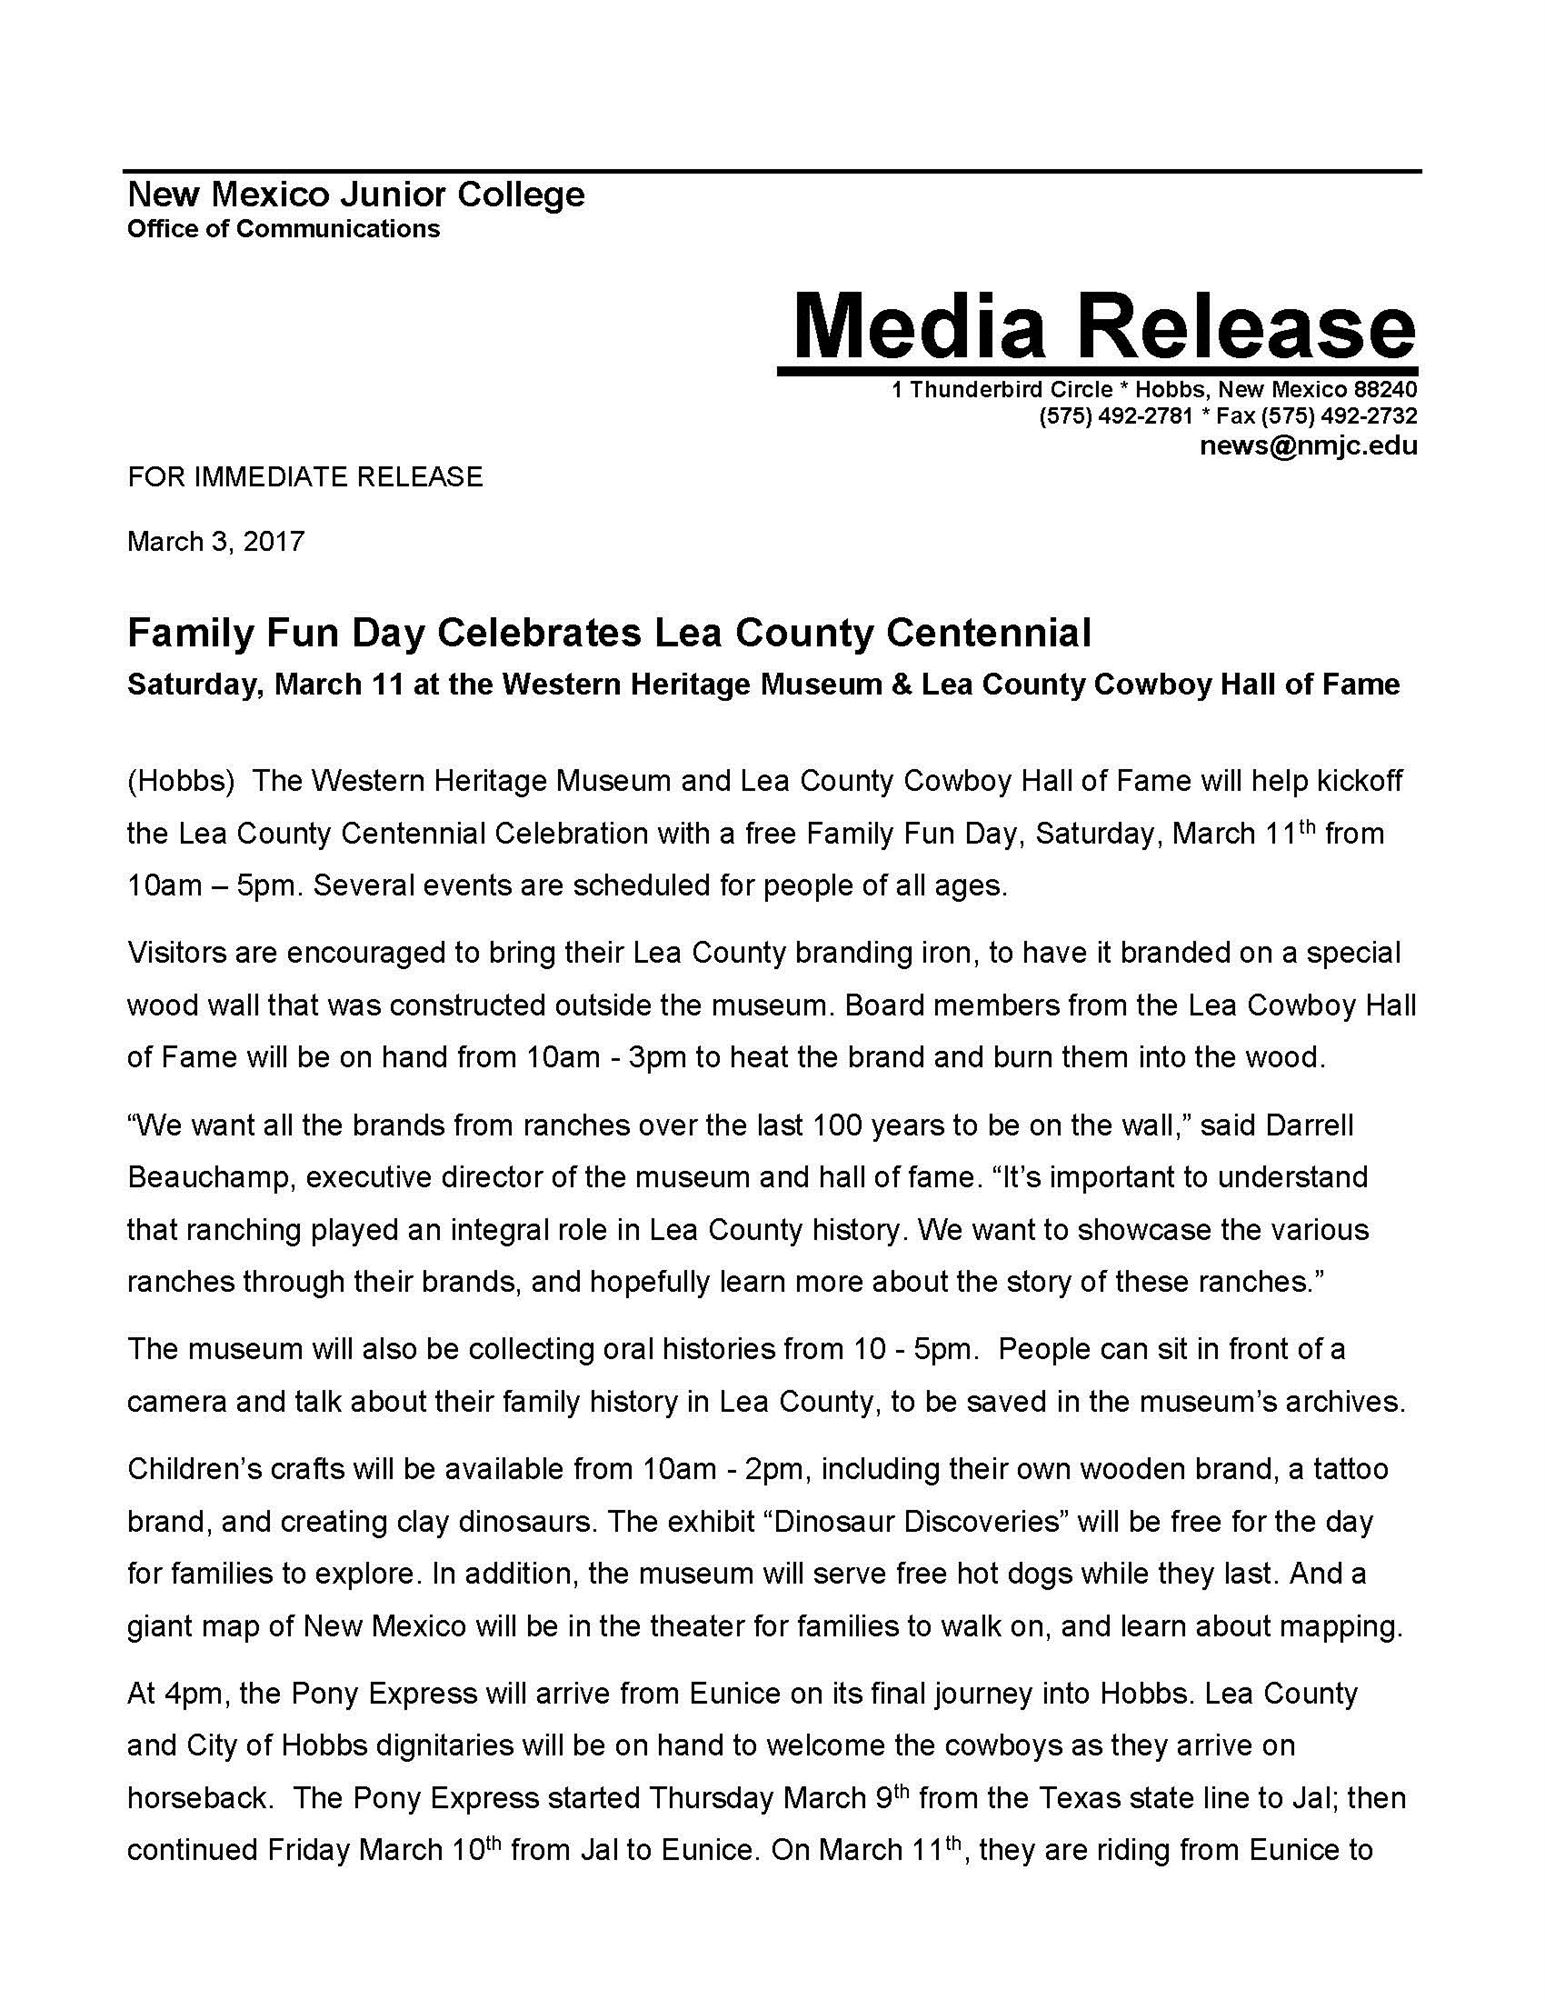 New mexico lea county eunice - Family Fun Day Media Release